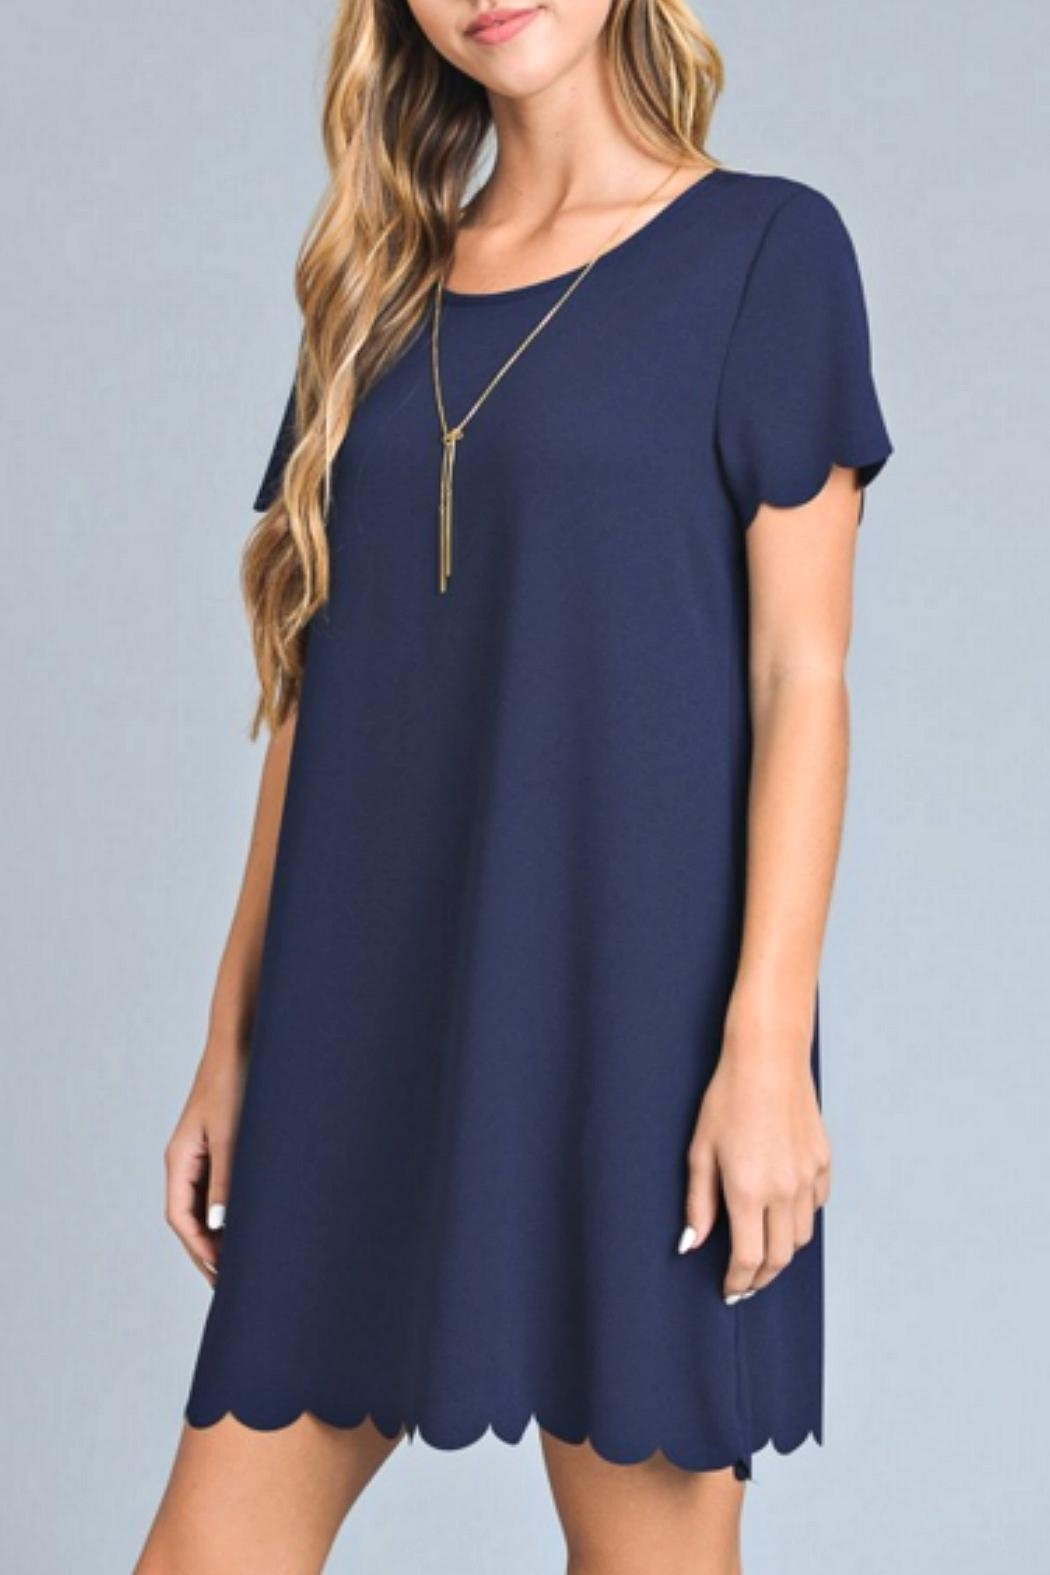 41967e4812cfc vanilla bay Navy Scalloped Dress from Kentucky by Izzie's Boutique ...